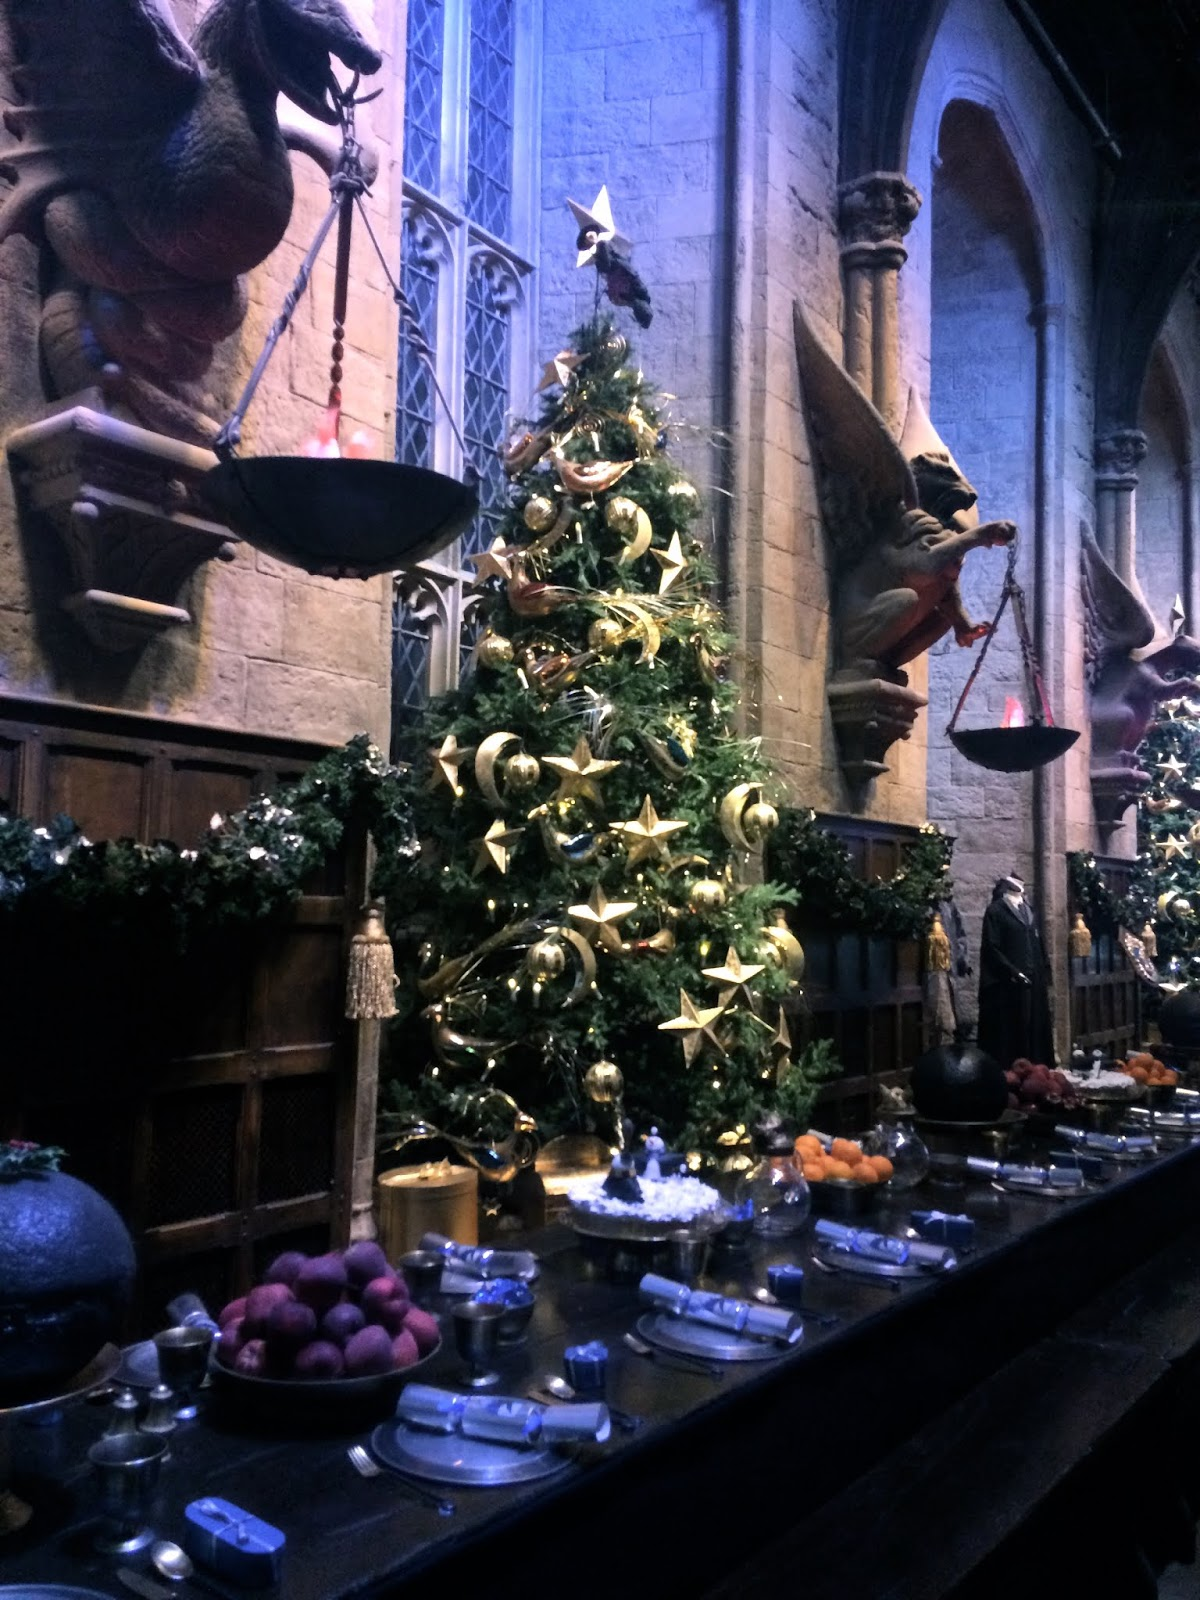 Christmas tree in the Great Hall at Harry Potter: Warner Bros Studio Tour London